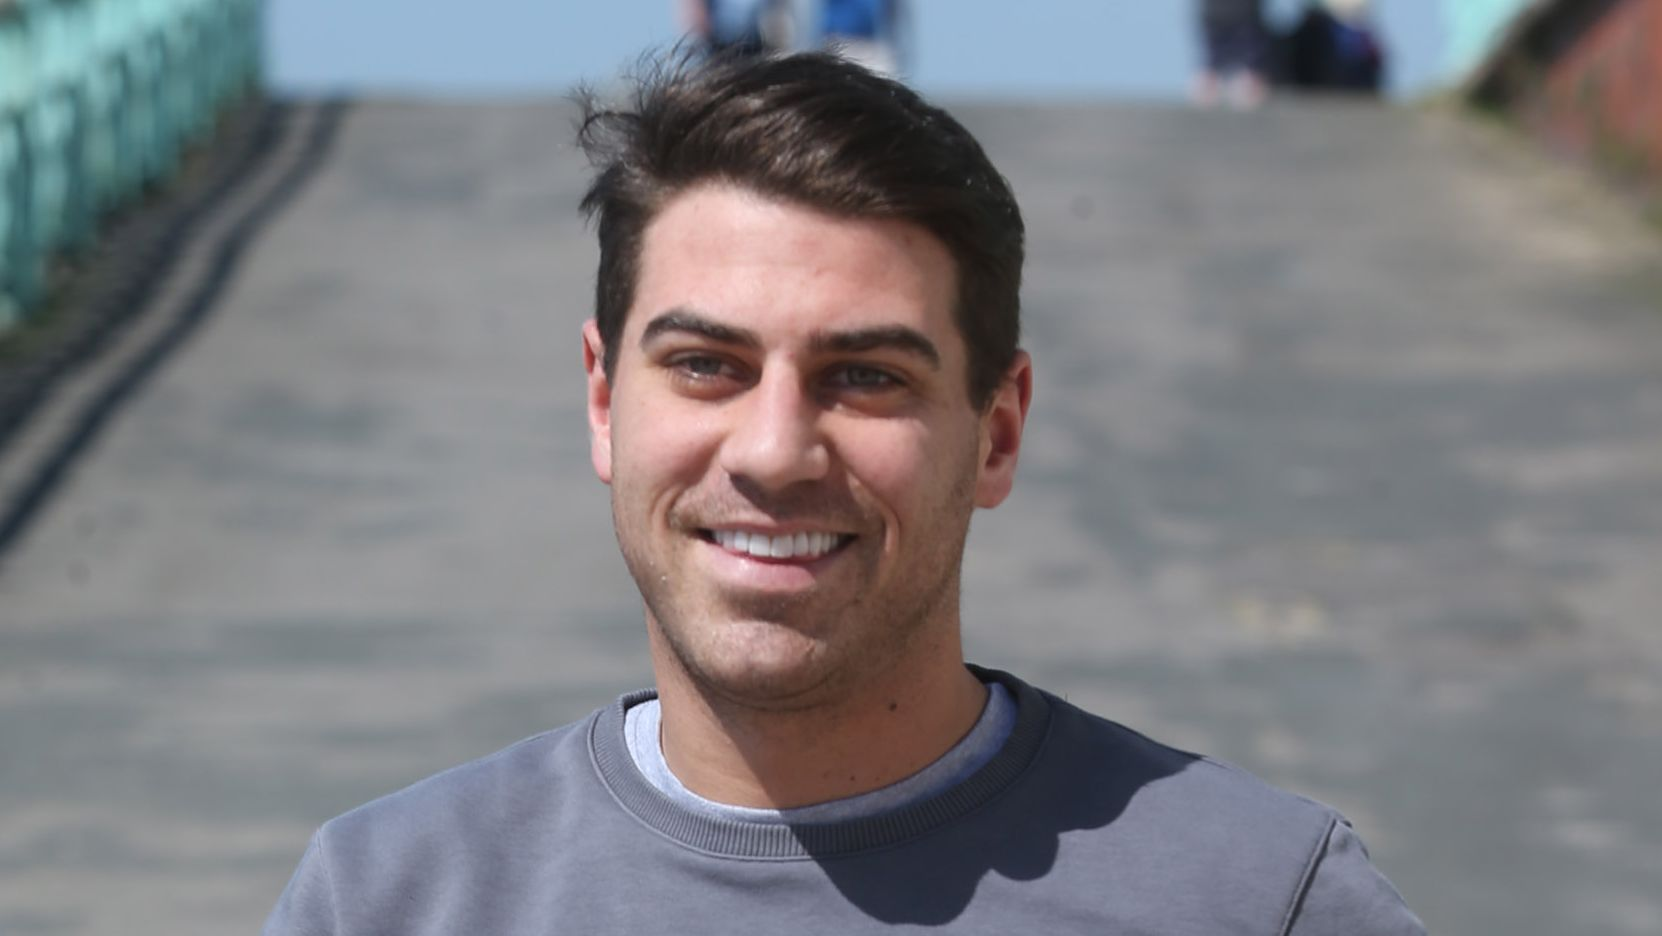 TOWIE's Jon Clark rushed to hospital after thinking he was 'going to die'